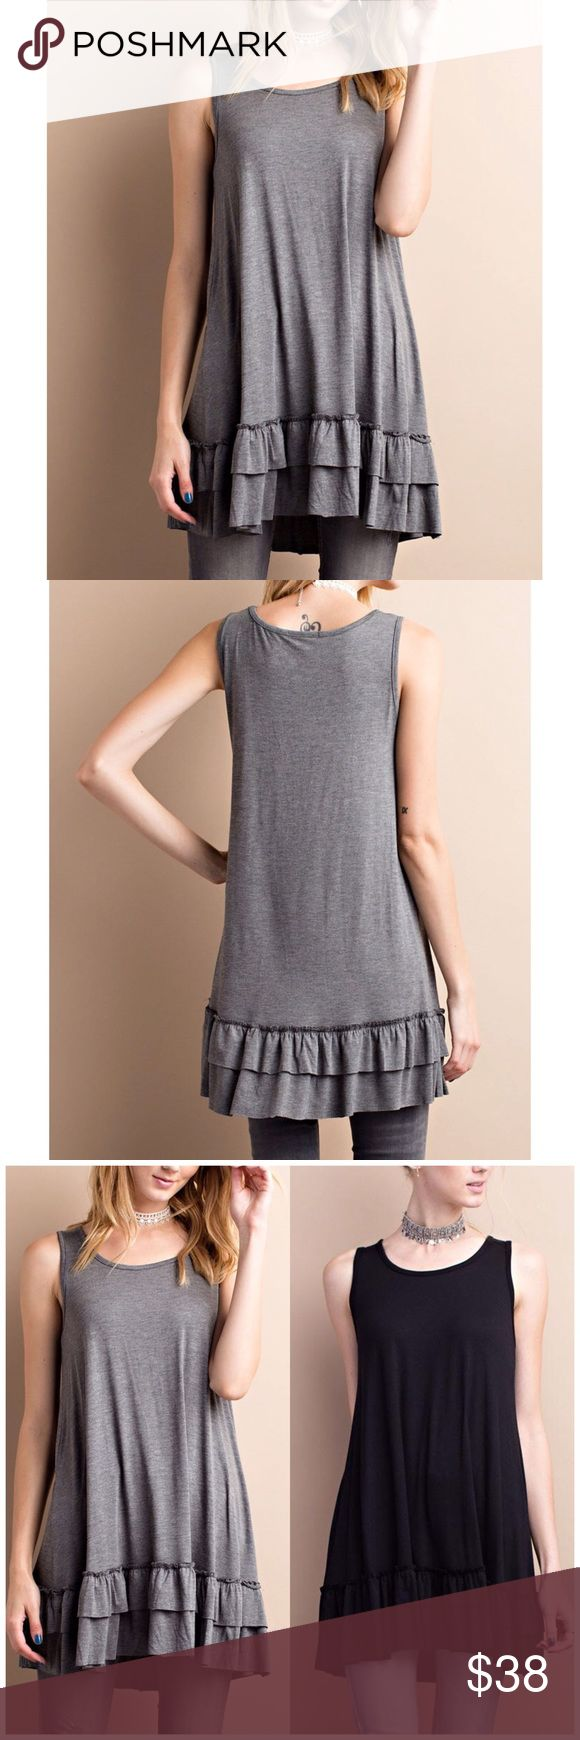 Gray Sleeveless Double Ruffle Tunic Top Gray Sleeveless round neck. Soft heavy rayon/ spandex material. Loose fit flow tunic with double ruffle. 95% rayon, 5% spandex.   Fits true to size.. available in black also B Chic Boutique Tops Tunics